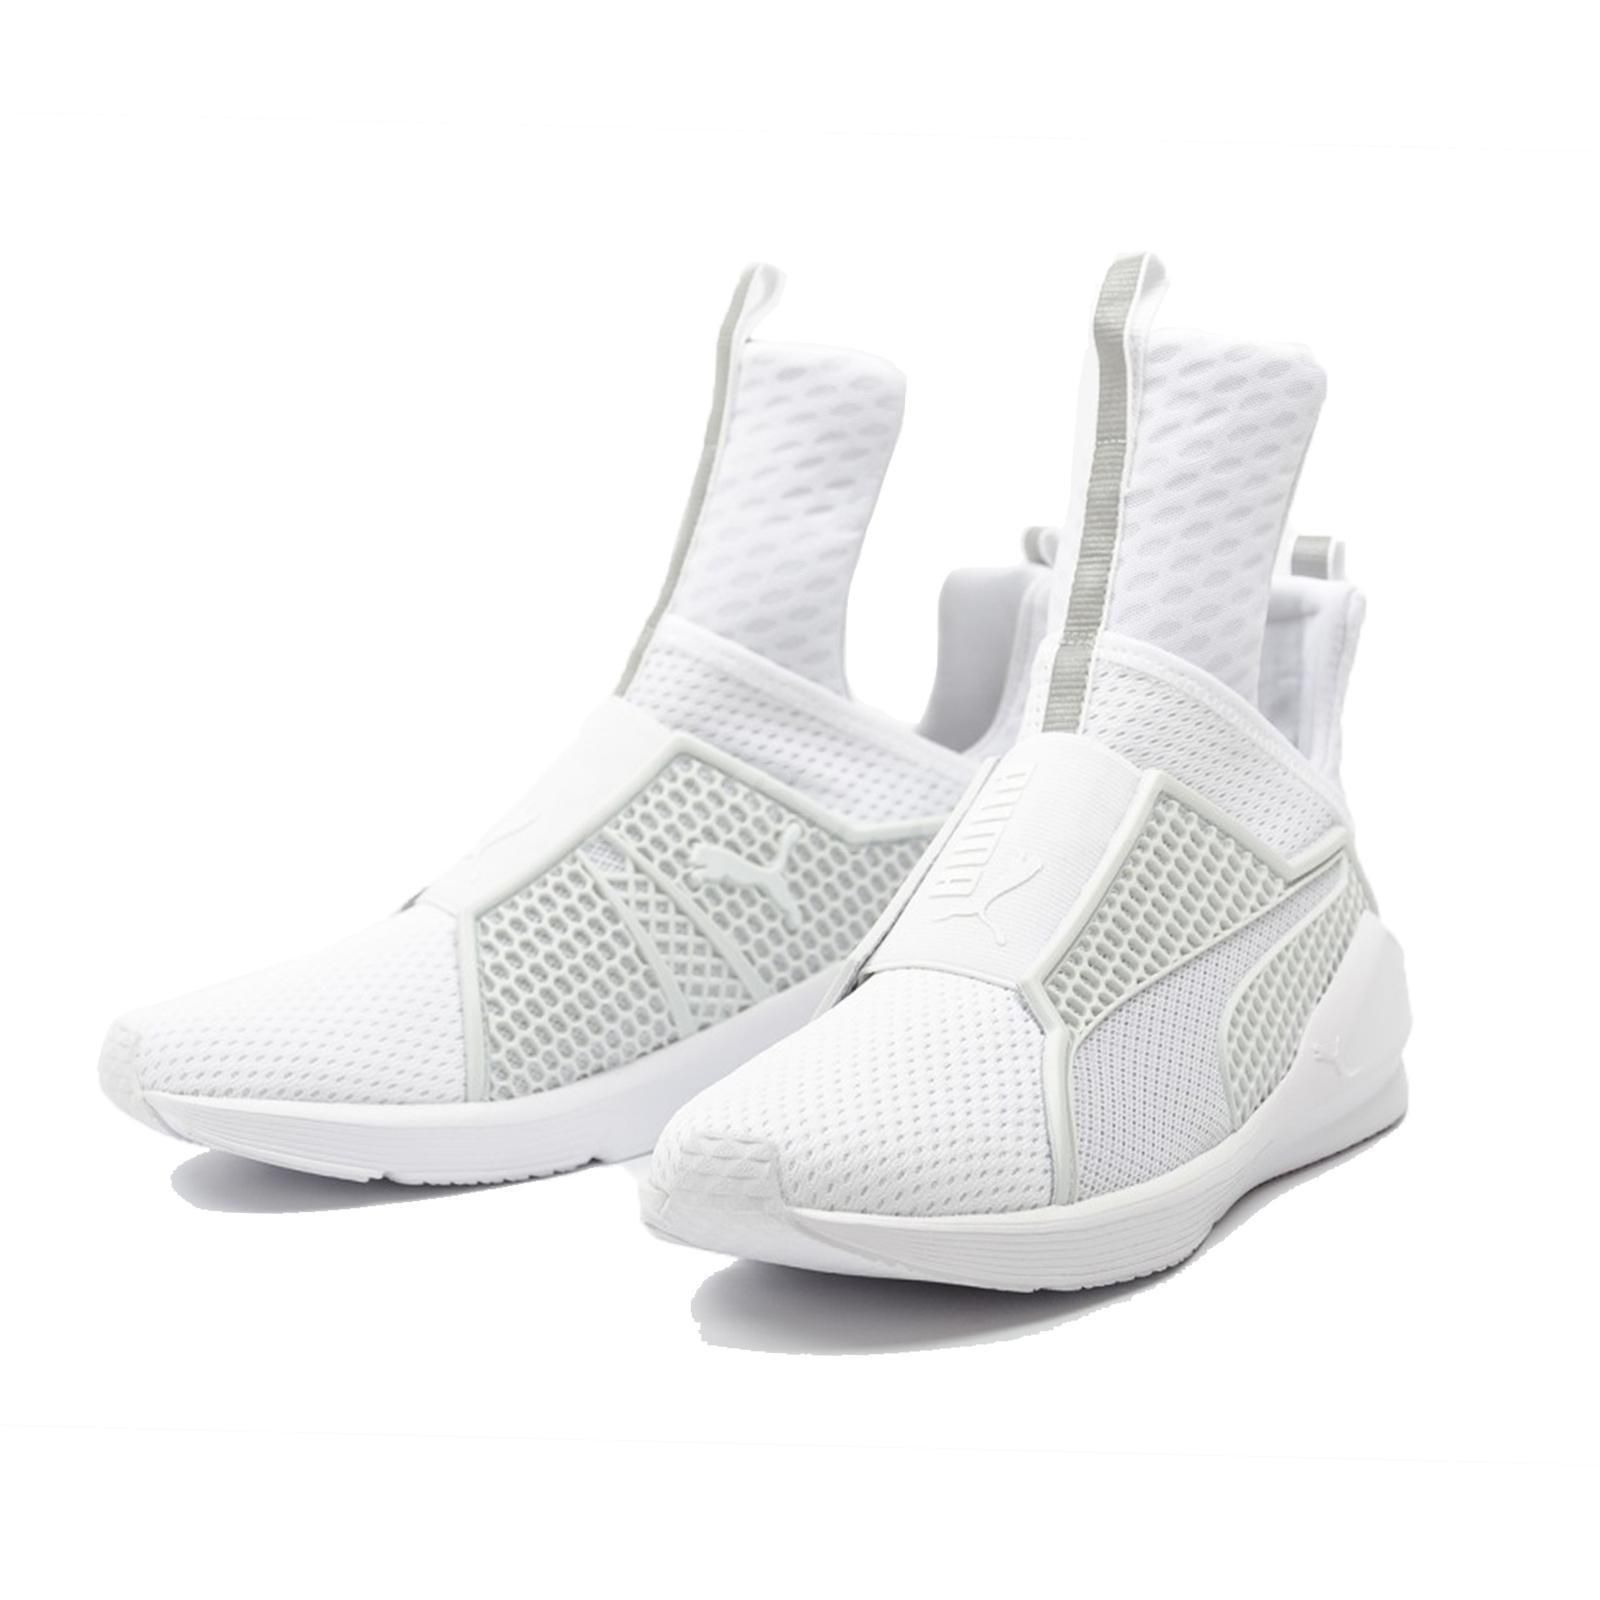 Puma x Rihanna Fenty Trainer RIRI White Womens Cross